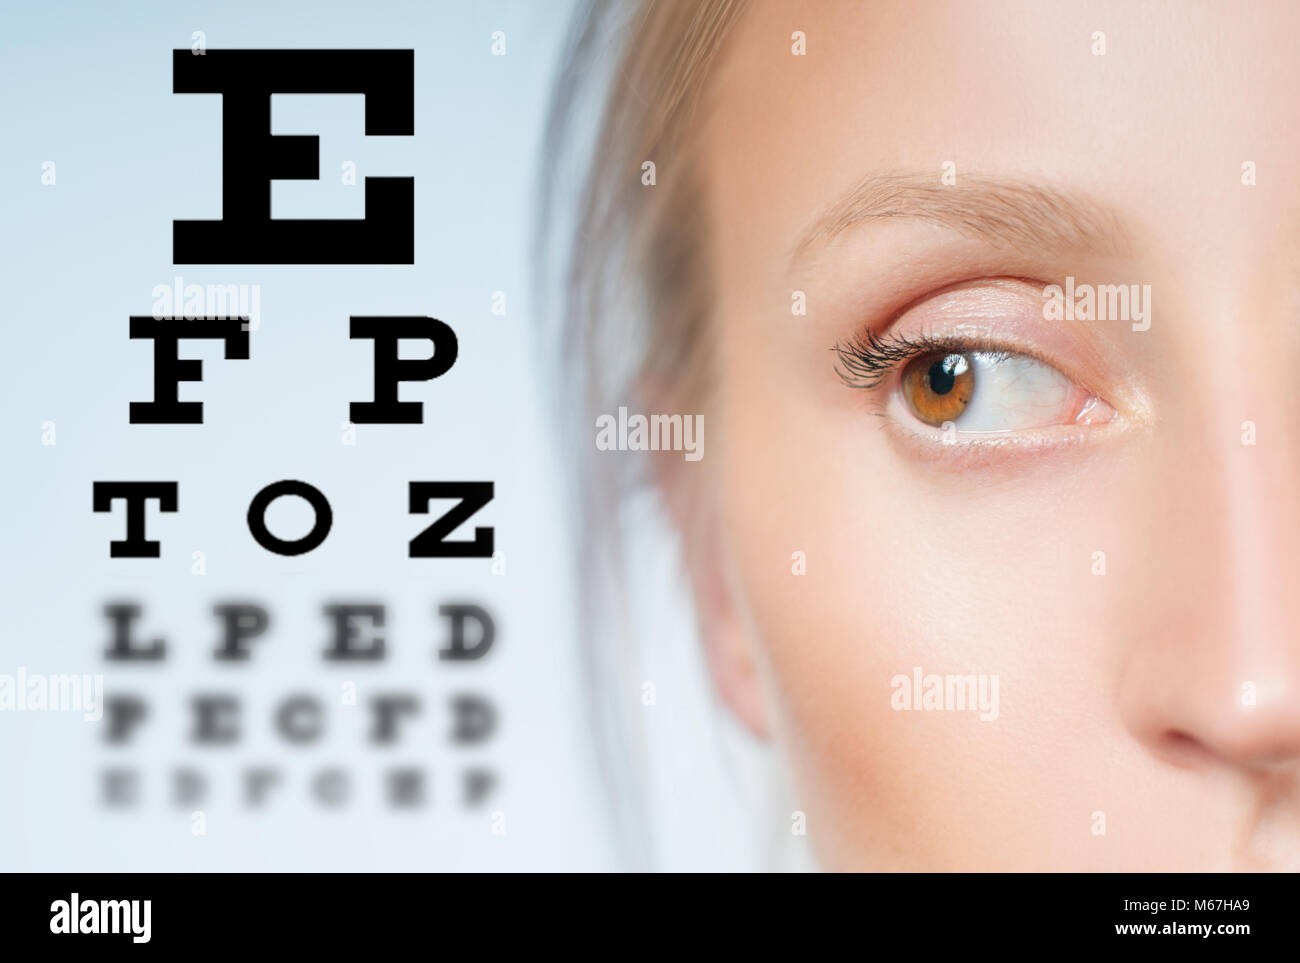 Eye test board stock photos eye test board stock images alamy close up image of an eye and vision test chart stock image geenschuldenfo Gallery